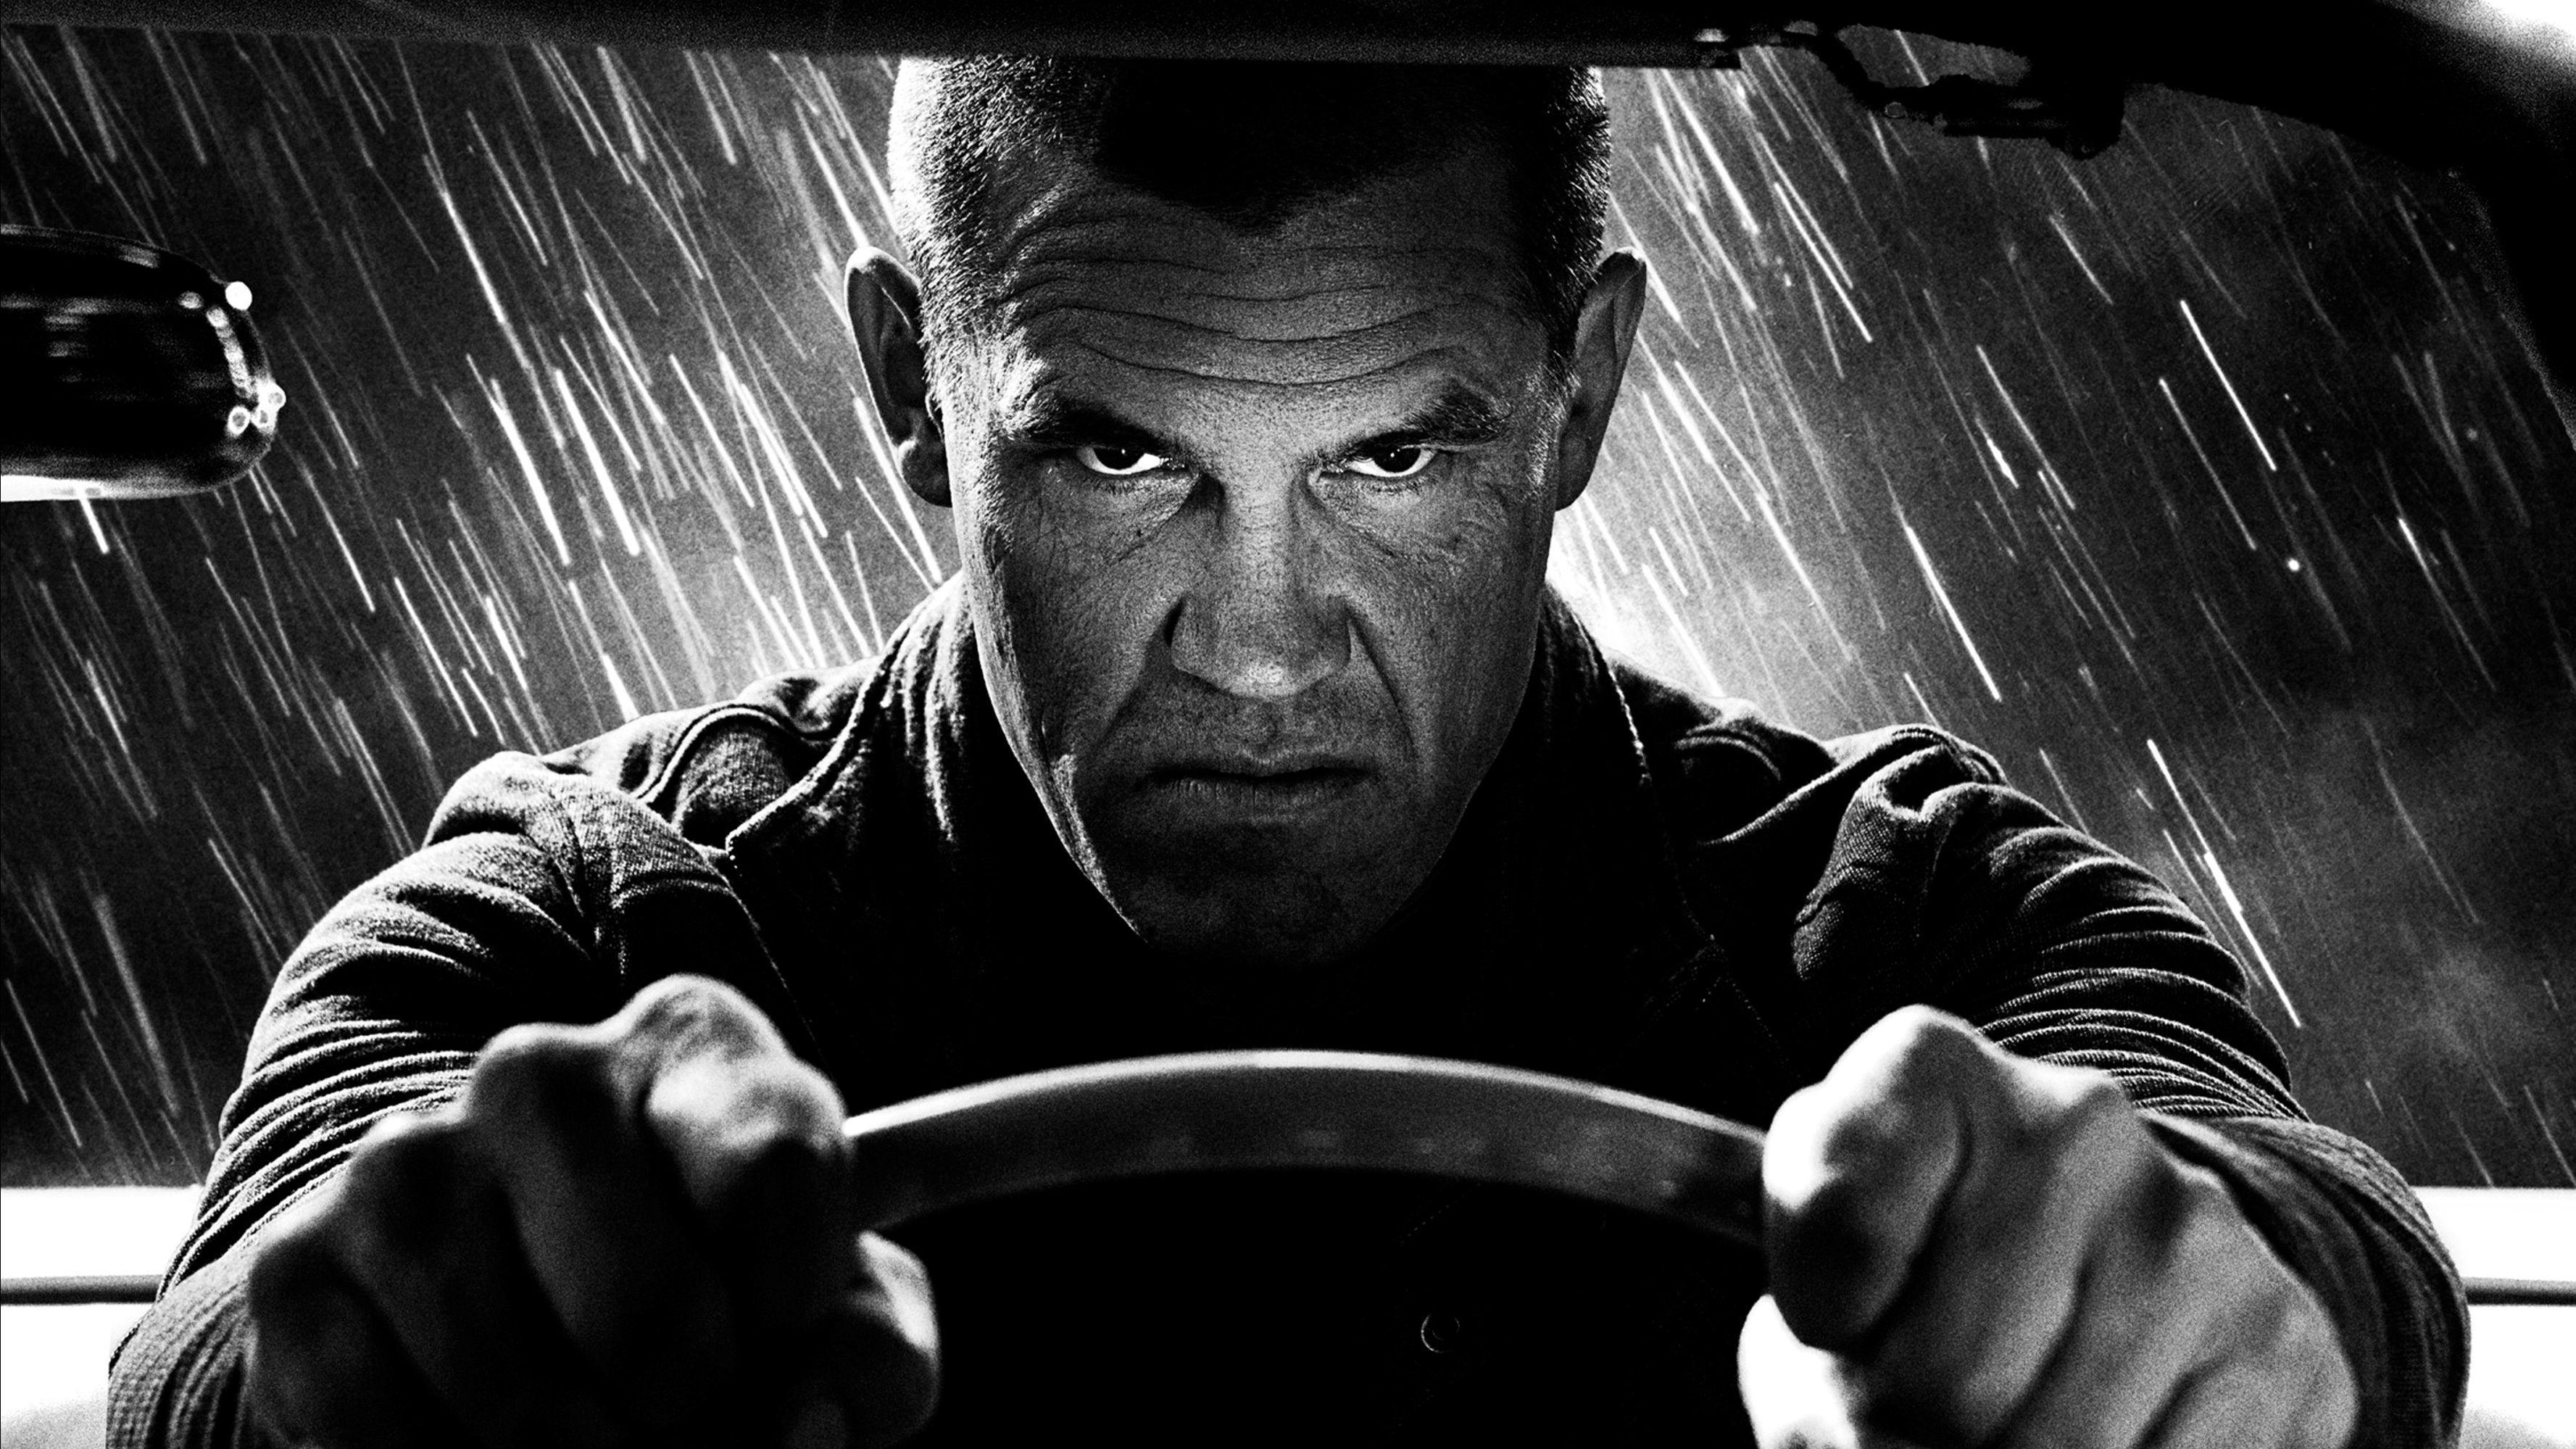 Josh Brolin Sin City A Dame To Kill For 2014 Wallpapers ...